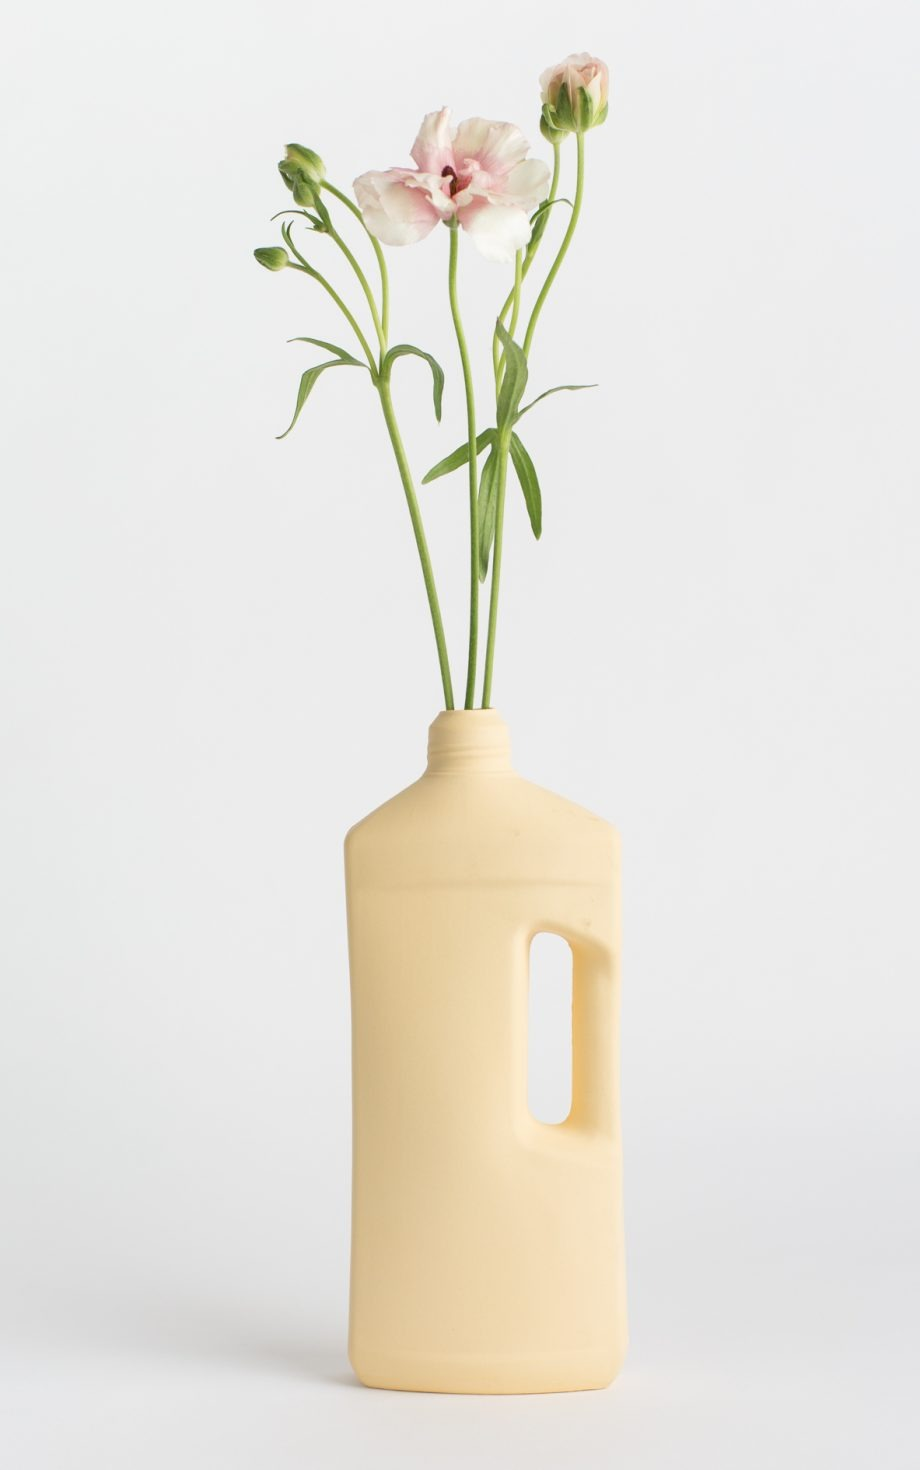 bottle vase #3 warm yellow with flower